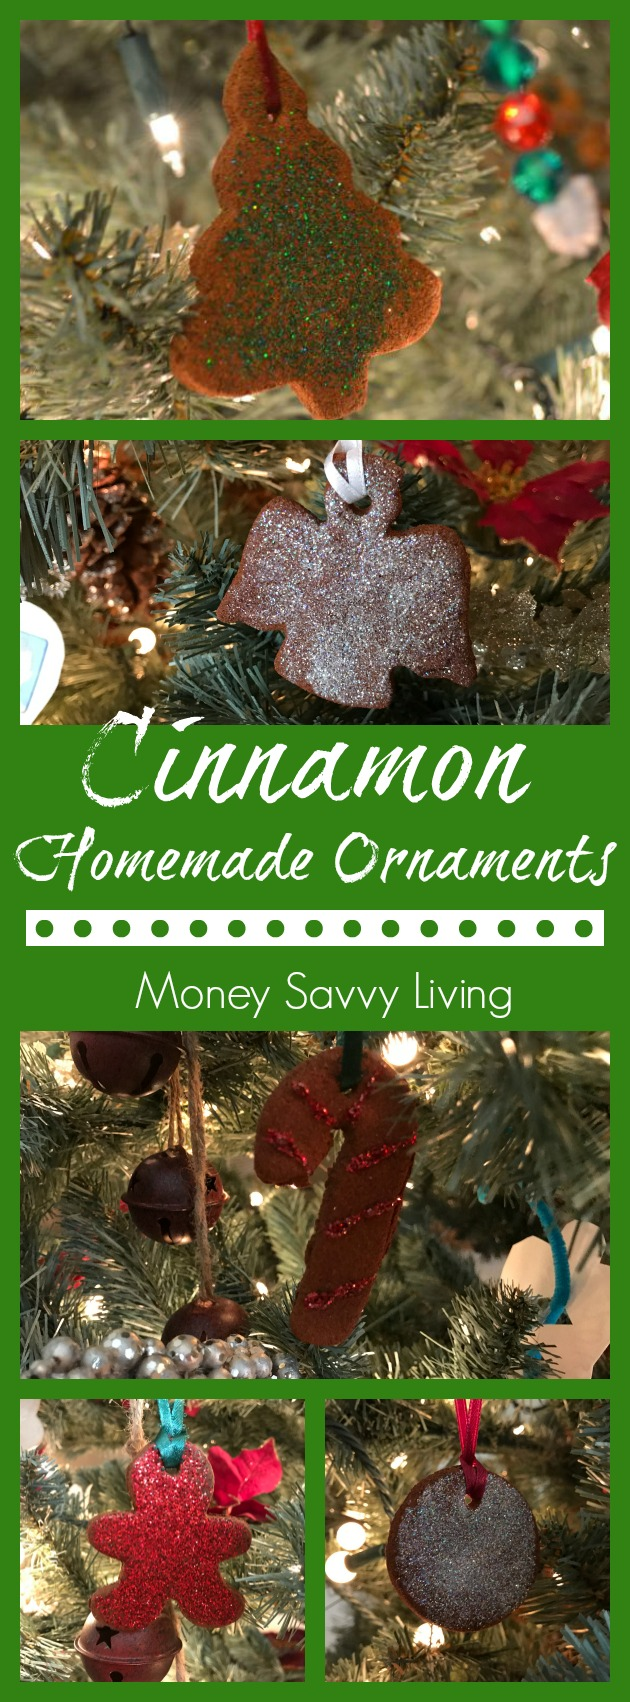 Homemade Cinnamon Christmas Ornaments #Christmas #christmasdecor #christmastree #christmascrafts #christmasdecorations #christmasdecordiy #christmasdecorationsdiy #christmasornaments #christmasornamentsdiy #cinnamon #applesauce #cinnamonornaments #ornaments #christmascraftsforkids